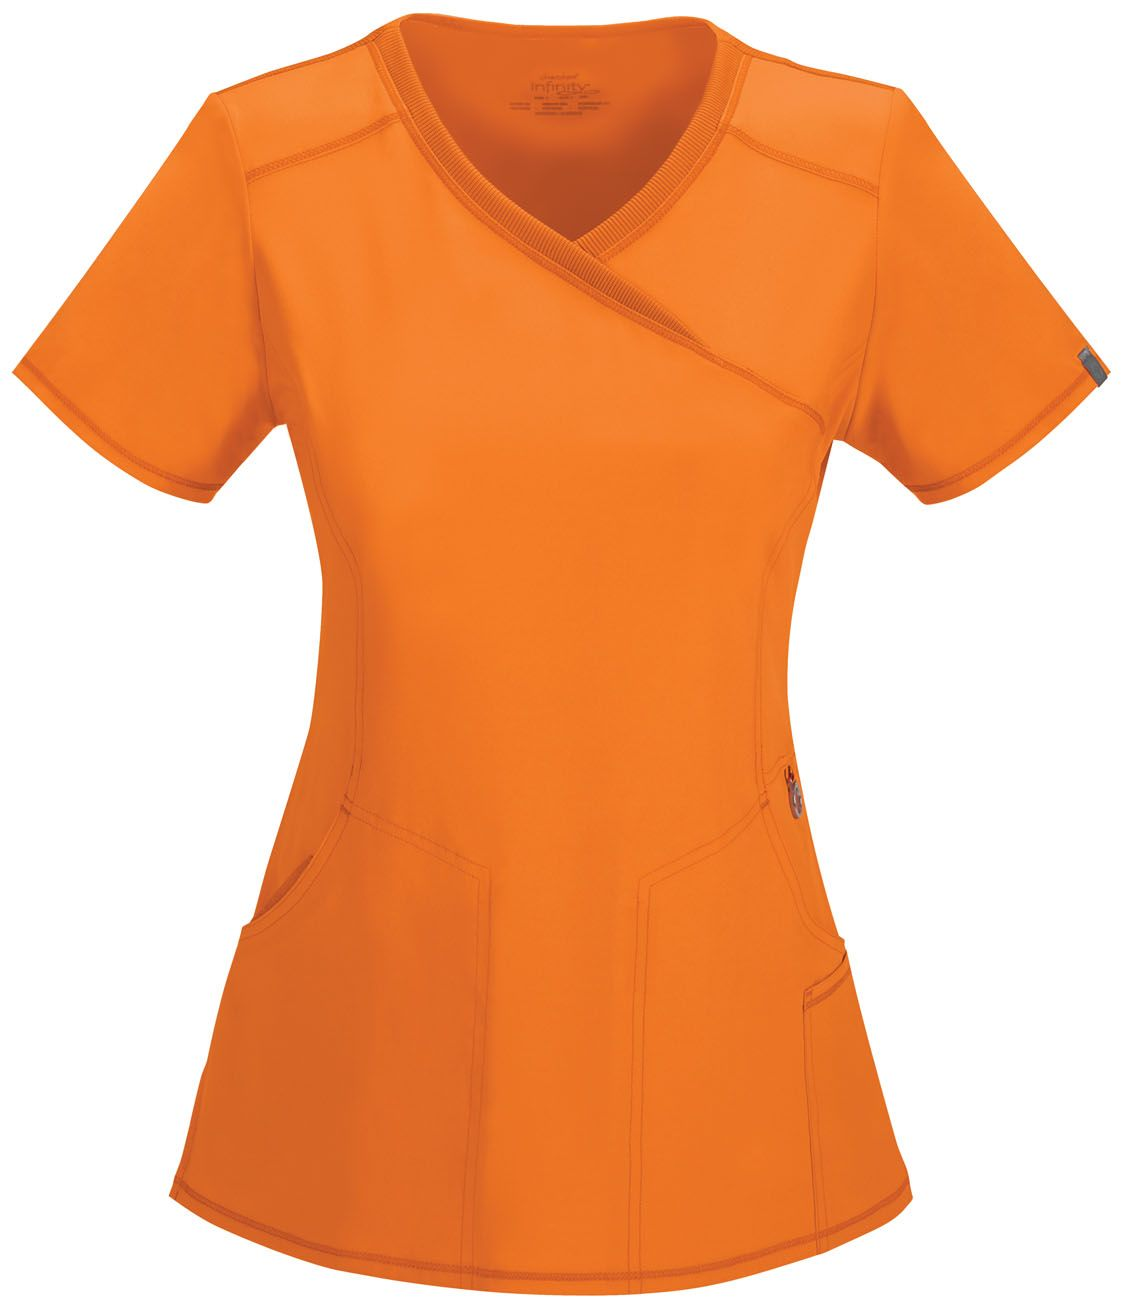 infinity uniforms. infinity by cherokee mock wrap top (2625a) | 4 less #uniforms # uniforms